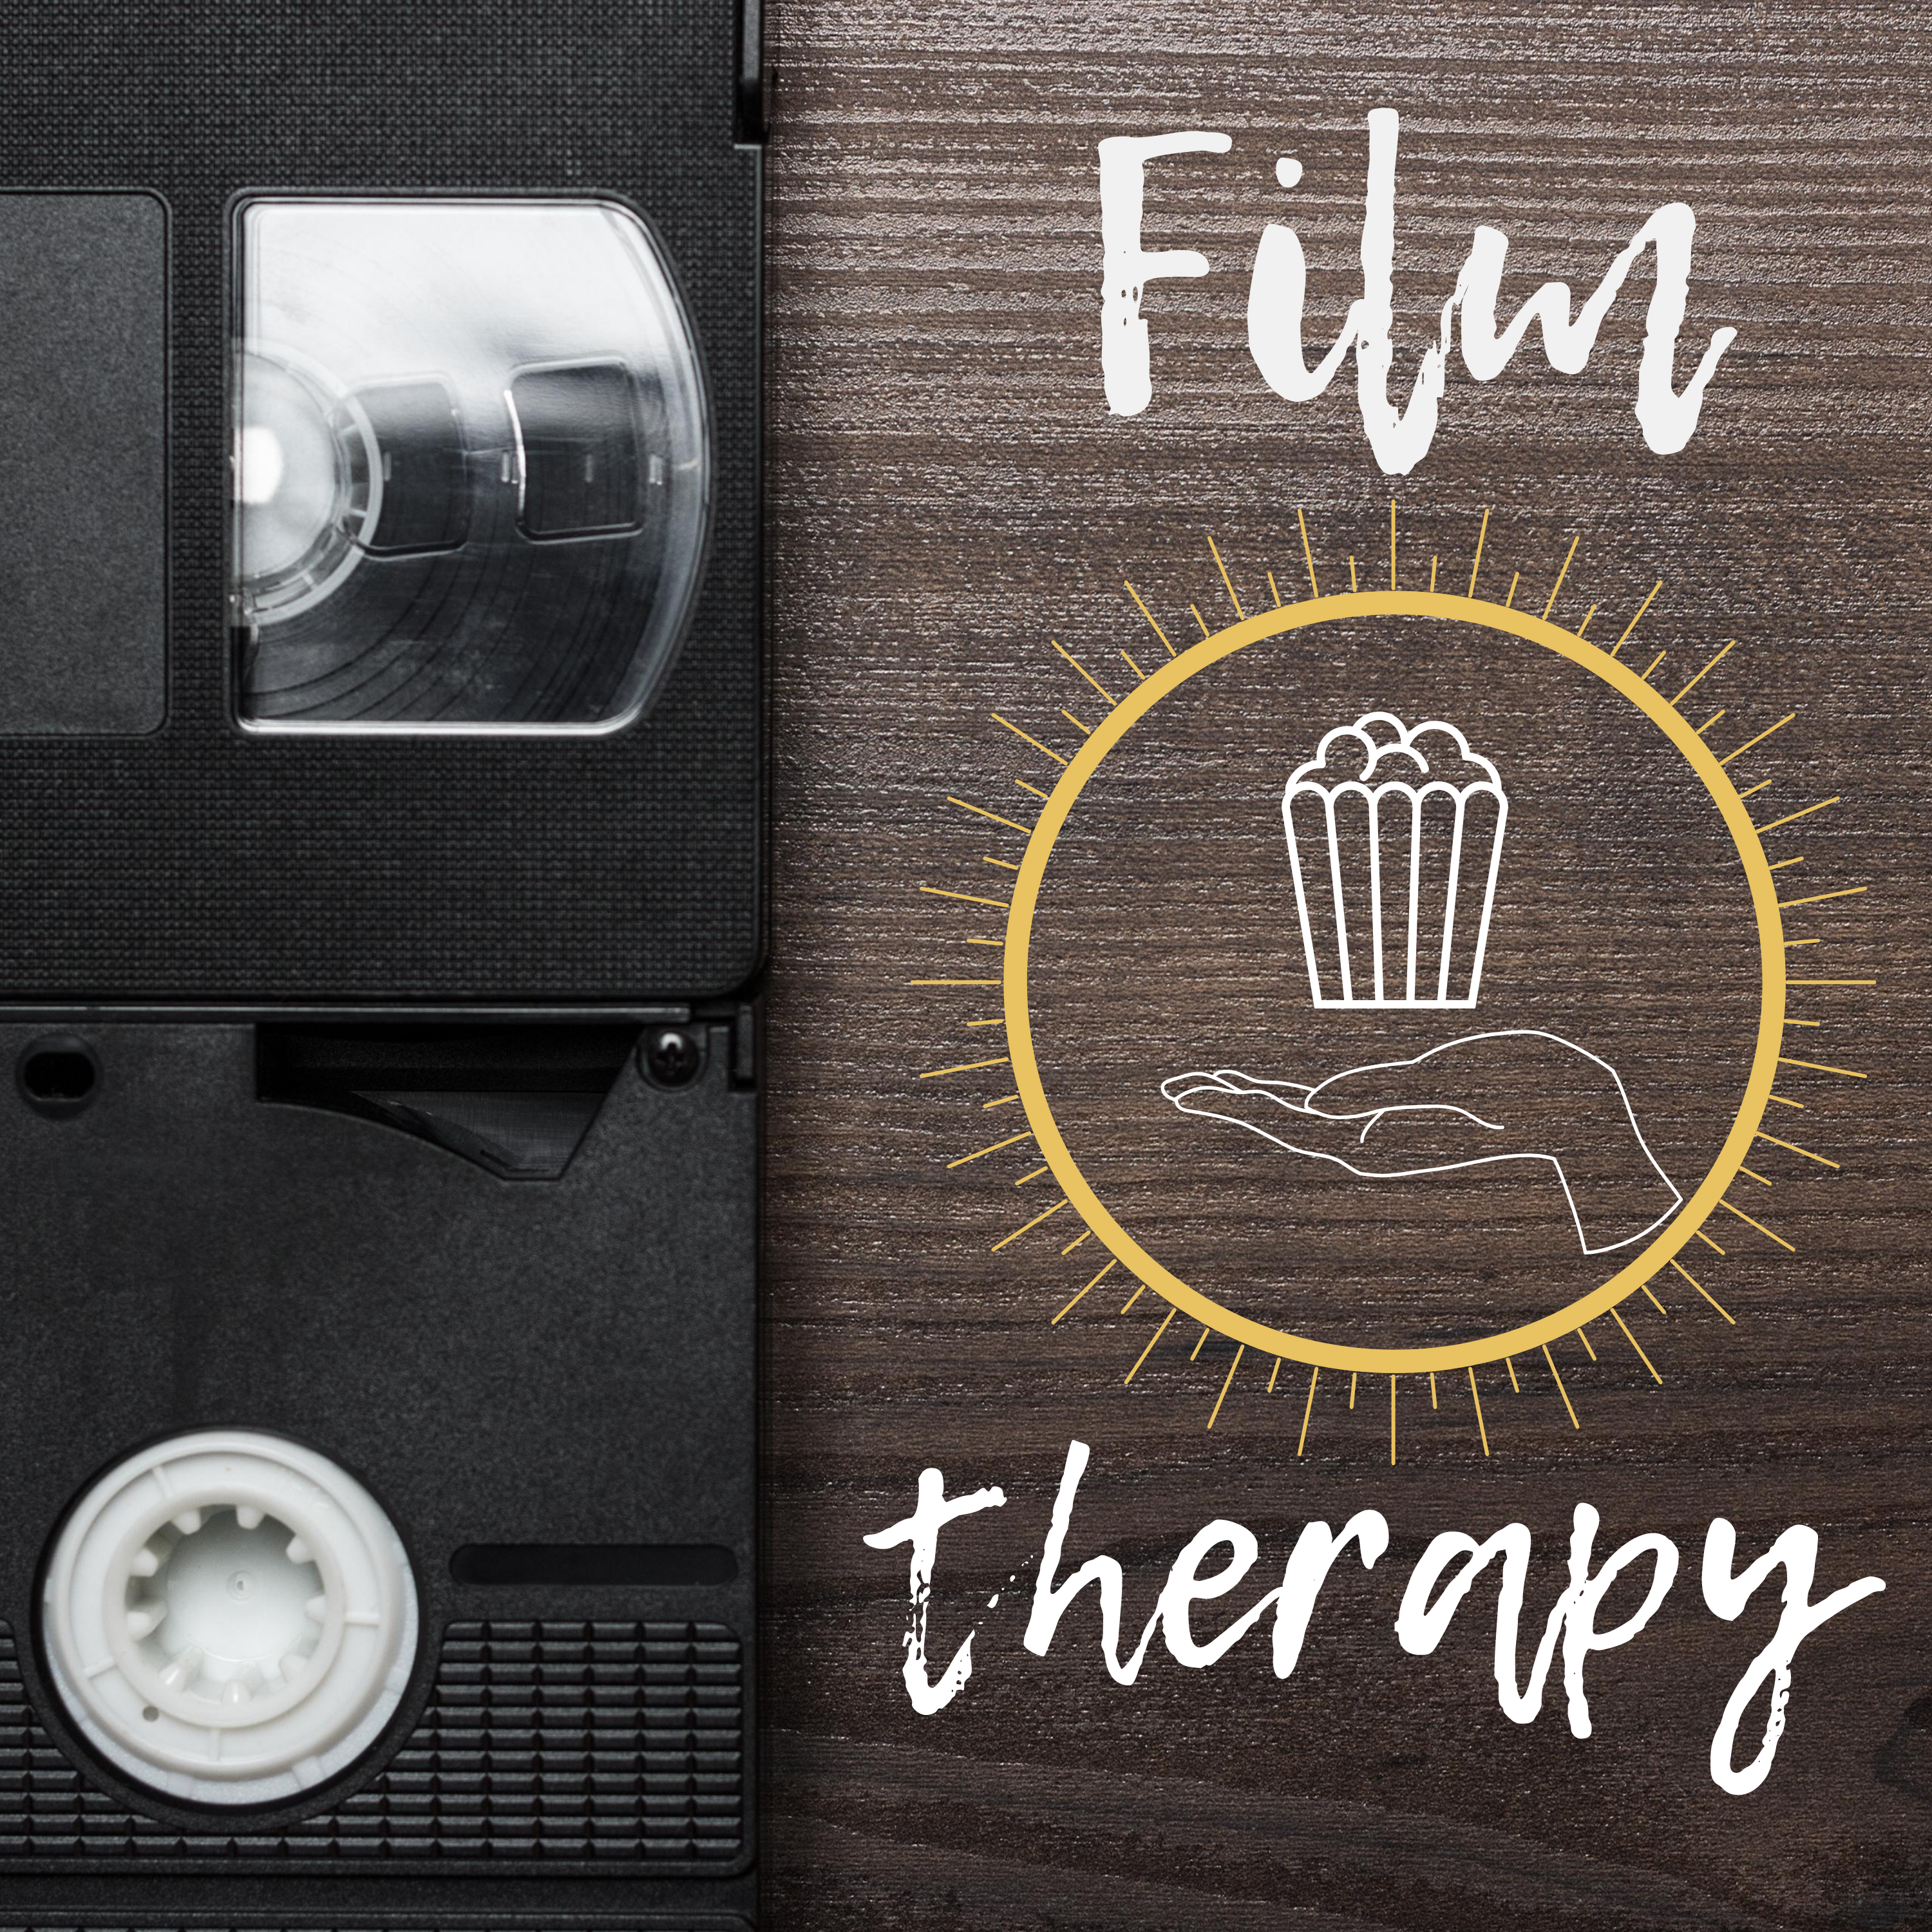 Film Therapy show image